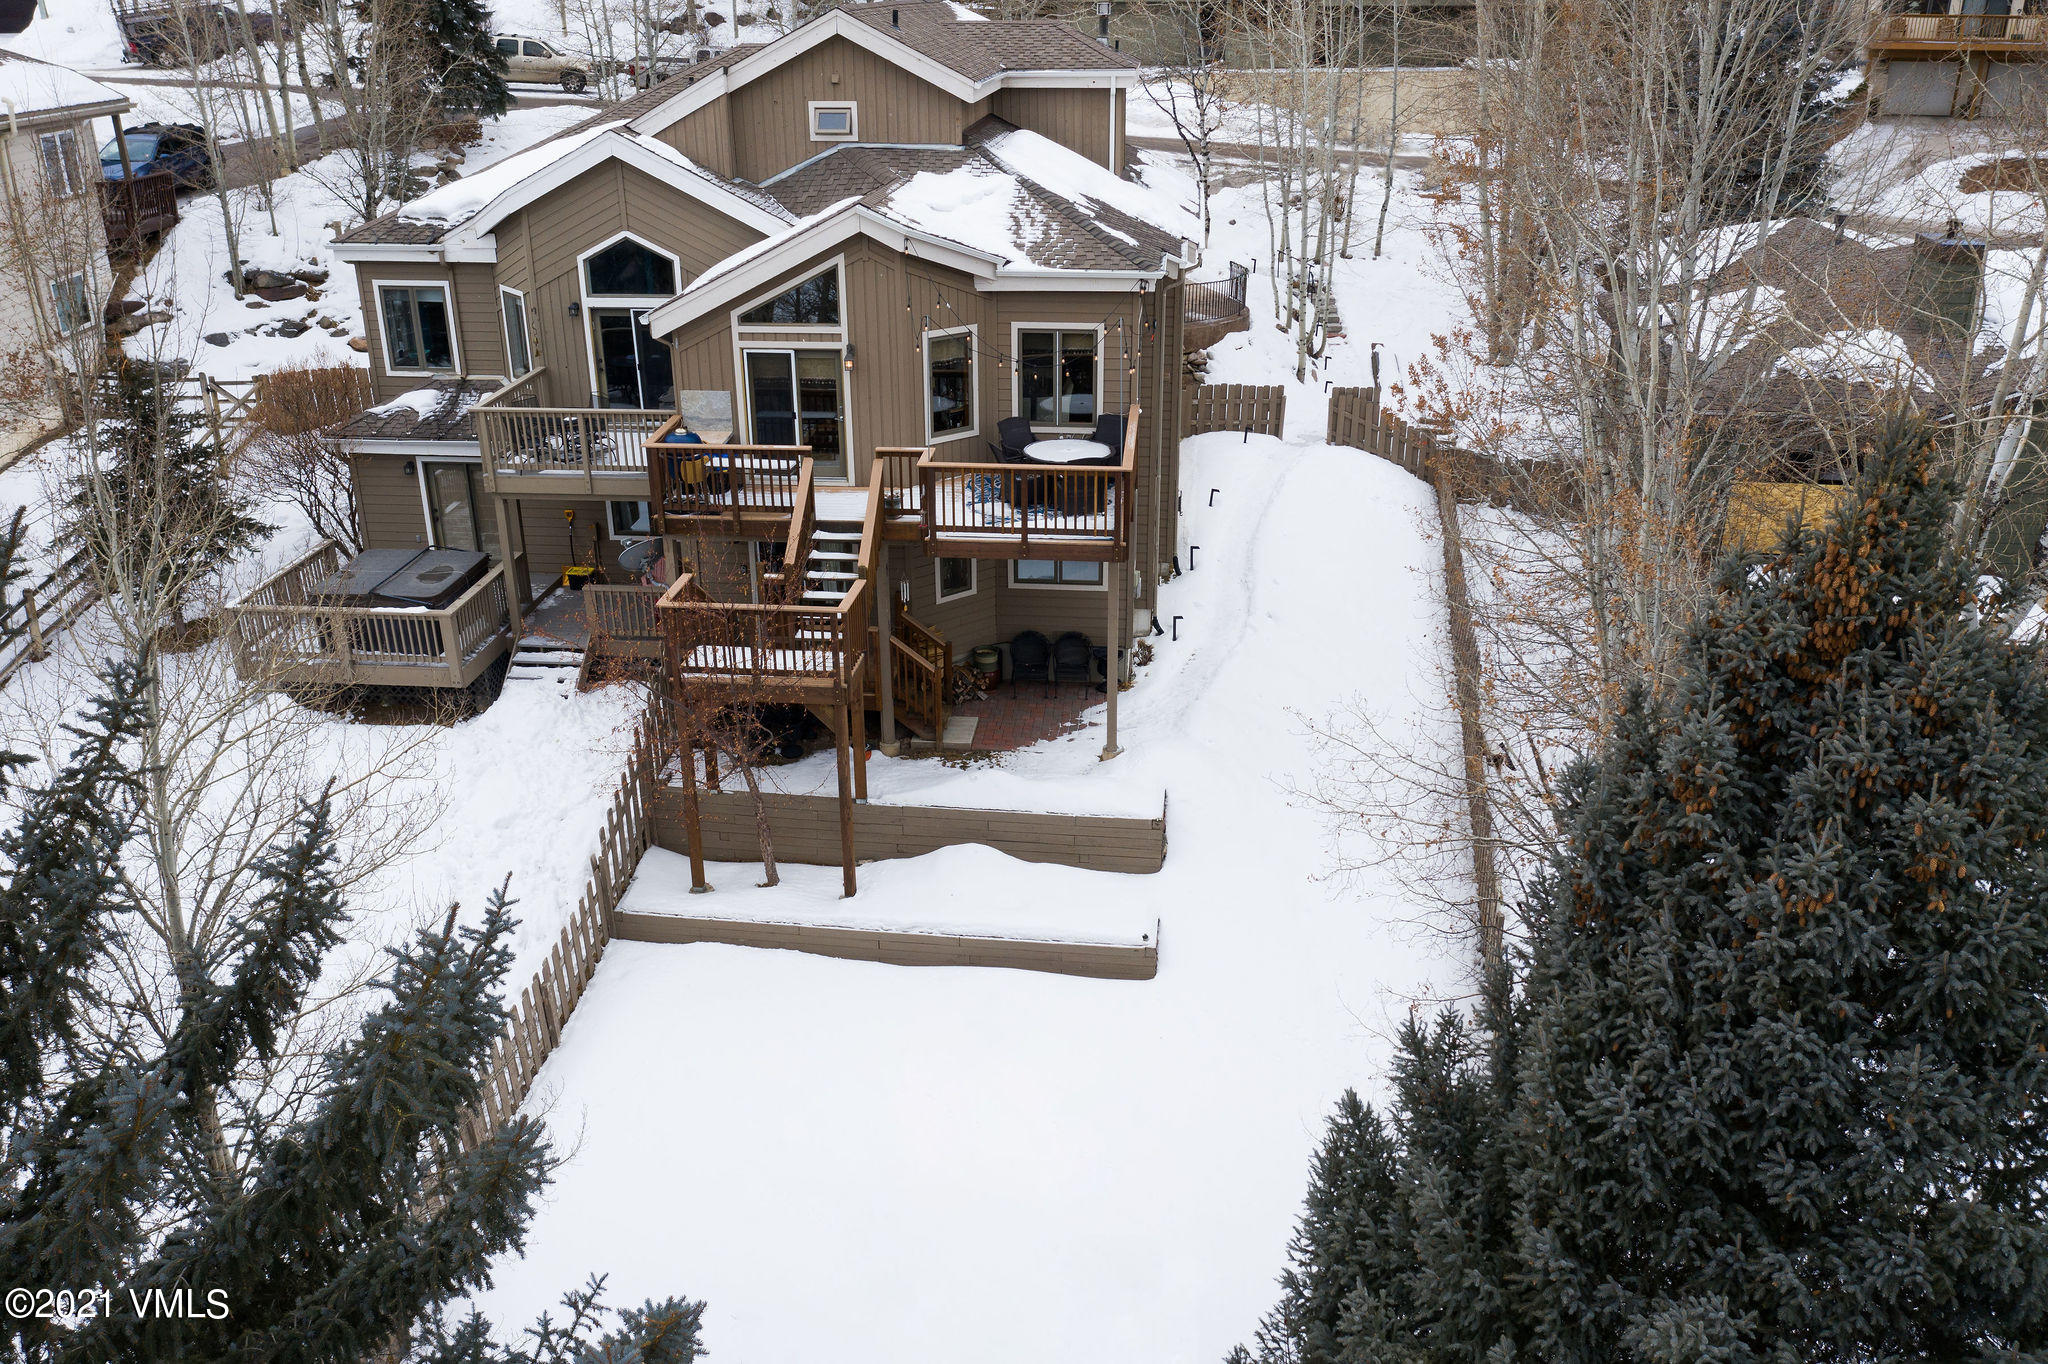 Enjoy this special setting in EagleVail close to the West park.  This well cared for 3-bedroom duplex has a large fenced in yard and northern views.  The primary bedroom has the whole top floor offering privacy. There is a new full kitchenette downstairs, and an additional media room.  Soak up the late afternoon sun, and enjoy lush landscaping in the summer months.